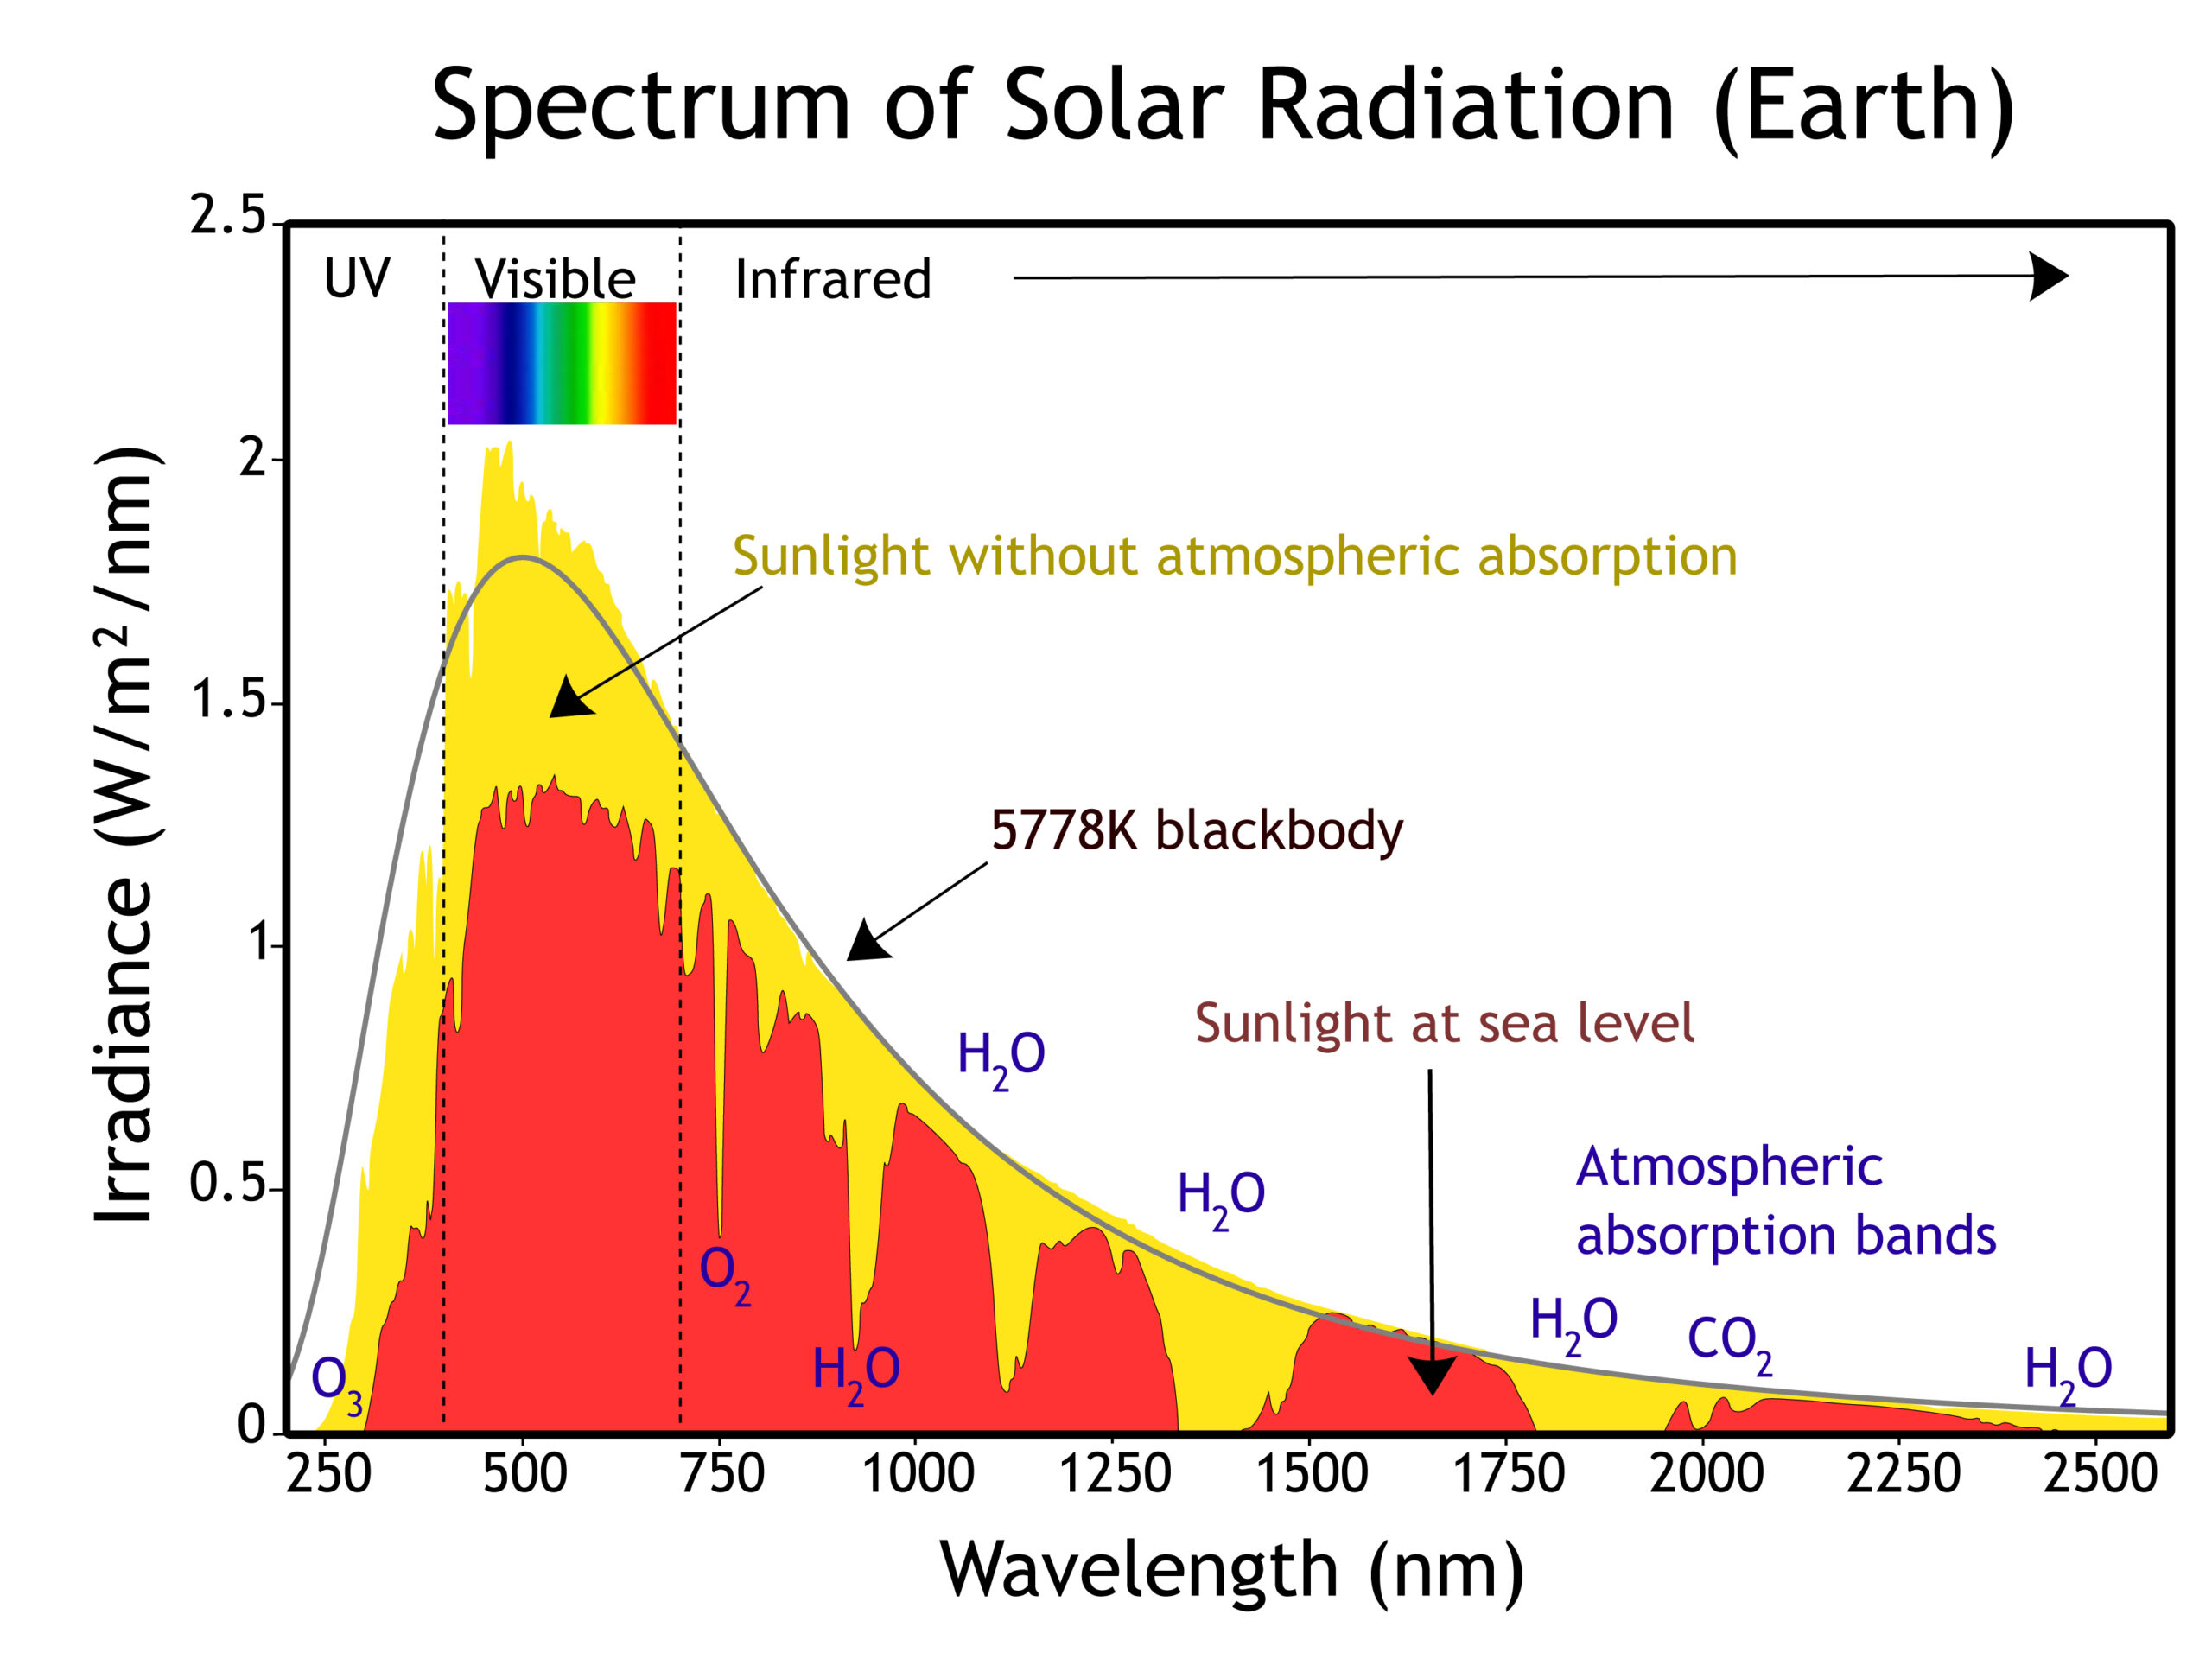 Spectrum of Solar Radiation. Courtesy of Robert A. Rohde and the Global Warming Art Project.